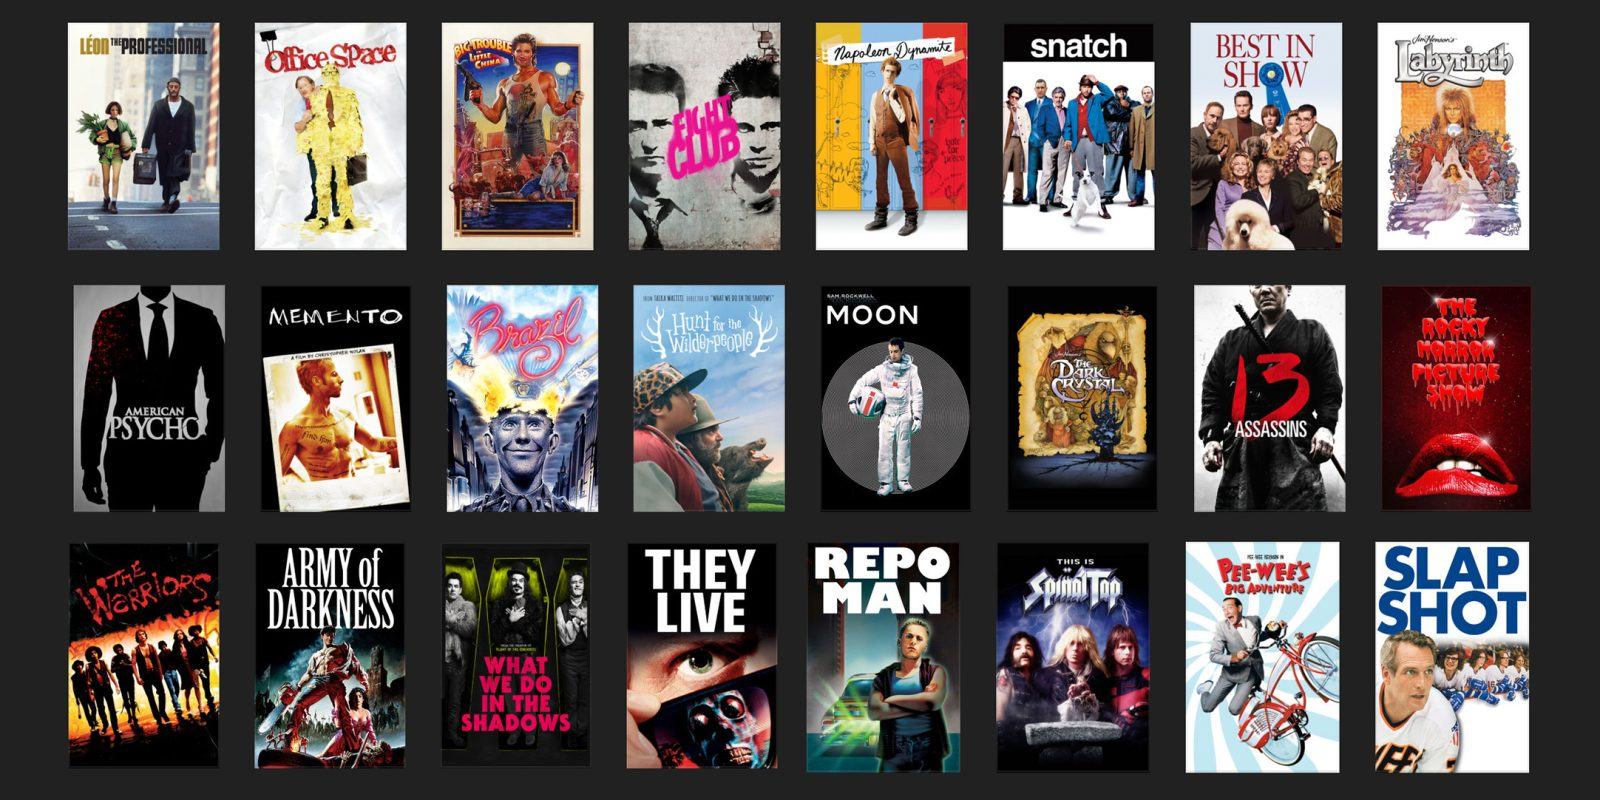 This week's best iTunes movie deals include Cult Classics from $8